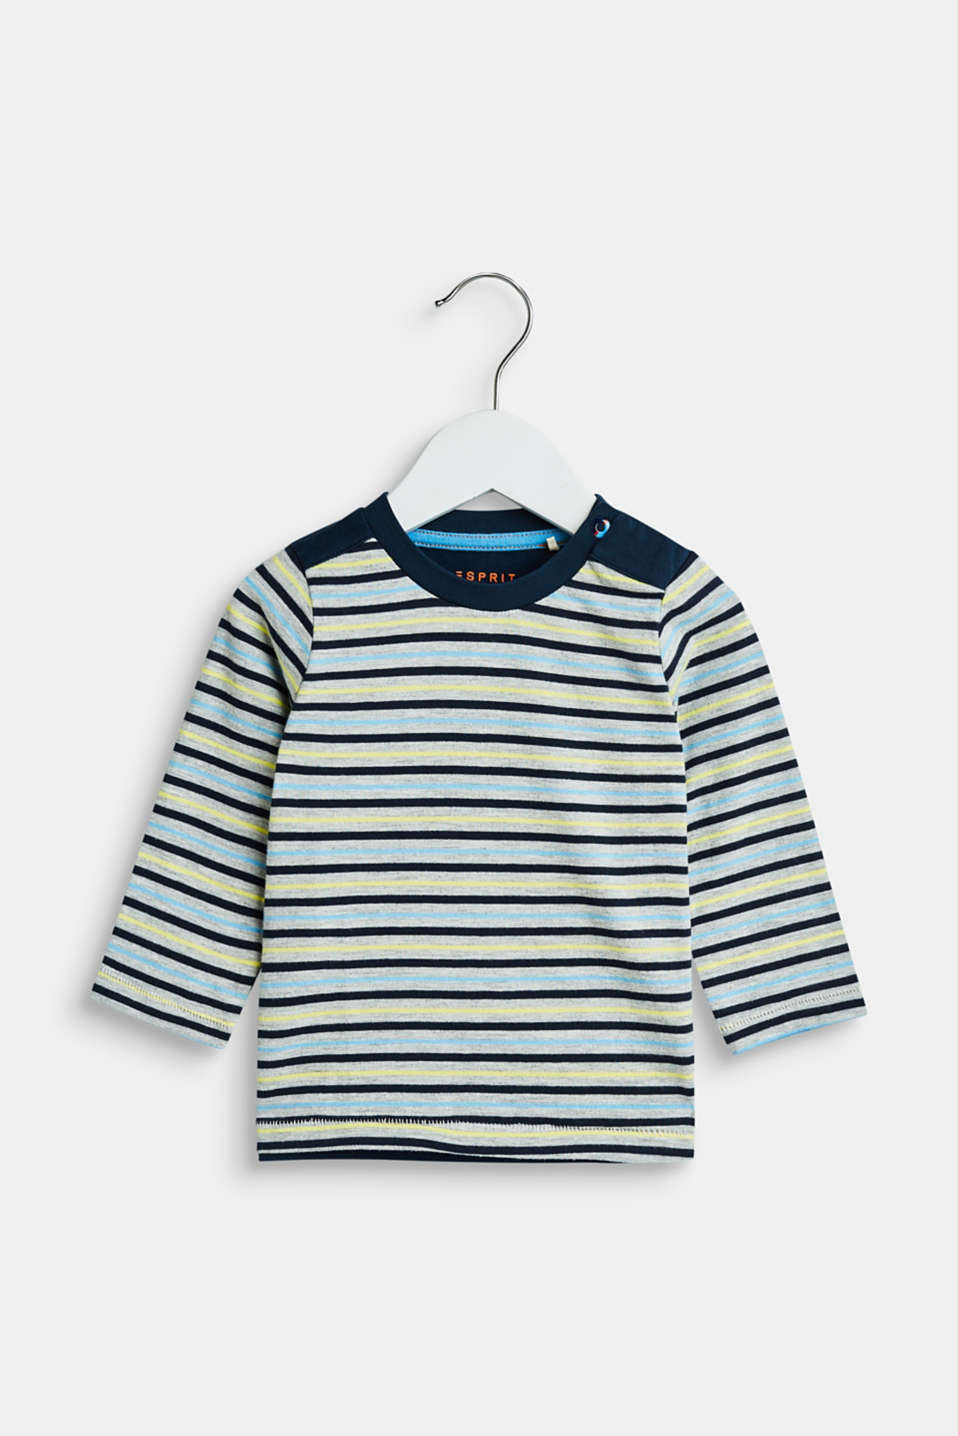 Esprit - Long sleeve top with printed stripes